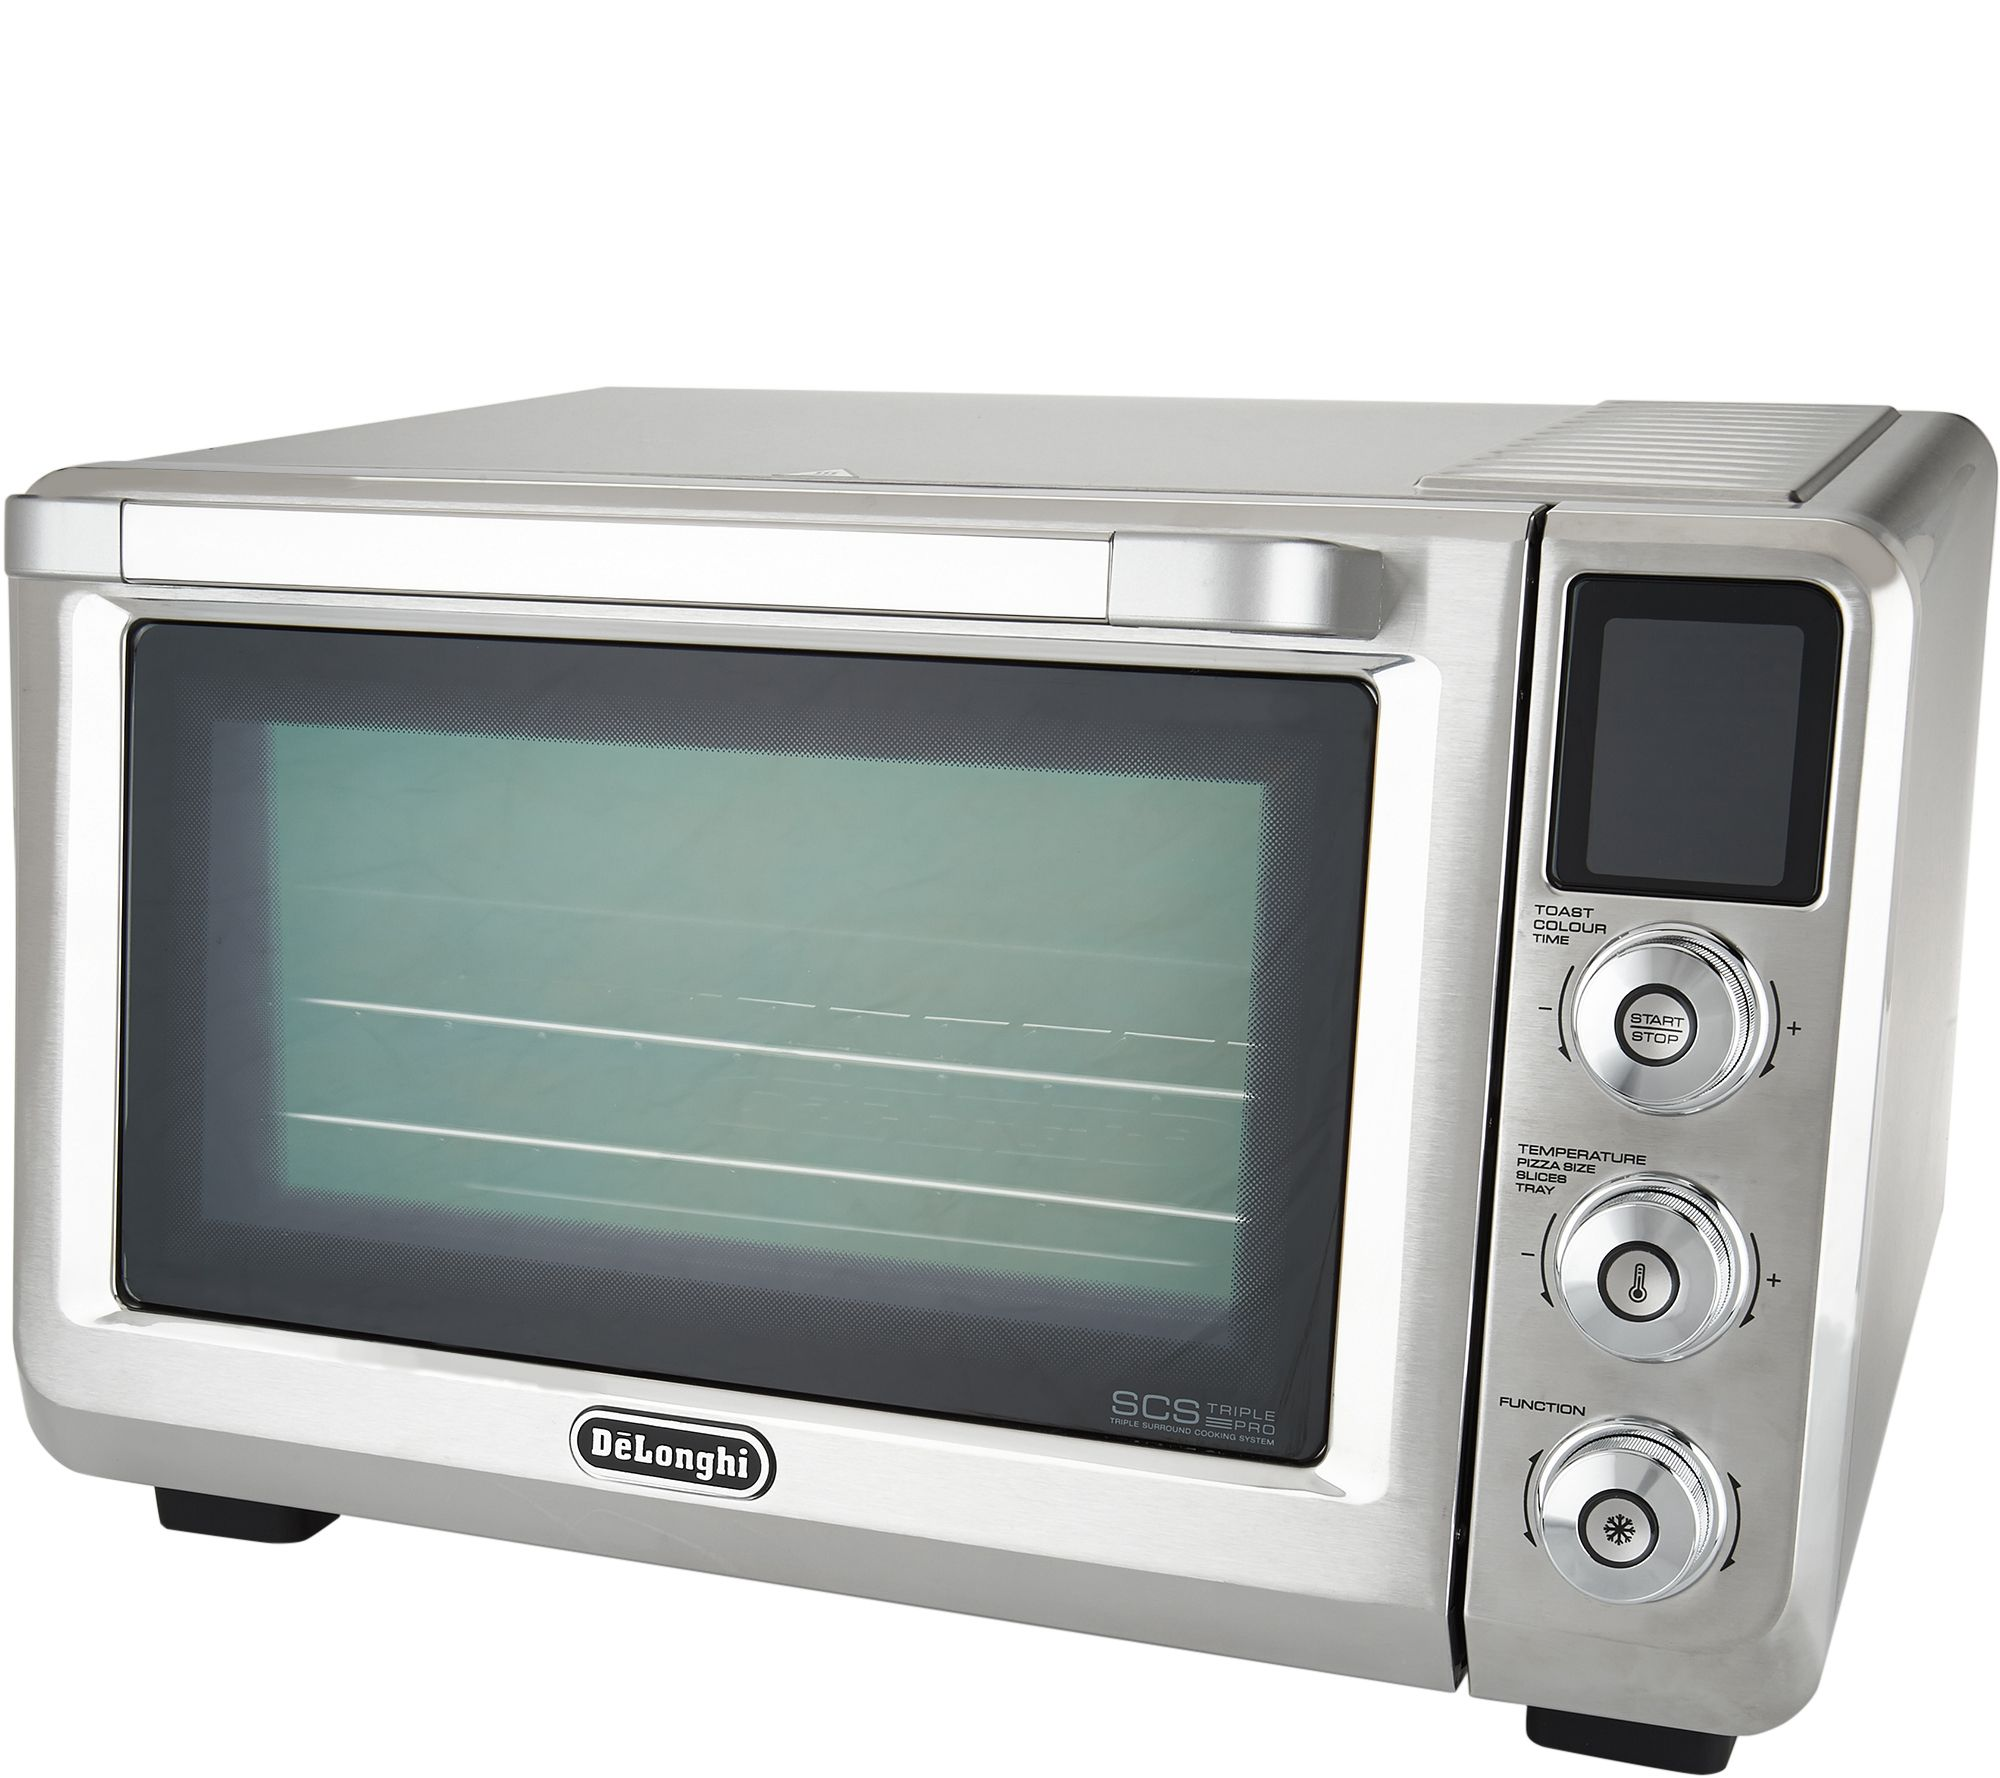 Delonghi Livenza All-Day Electric Convection Oven - Page 1 — QVC.com